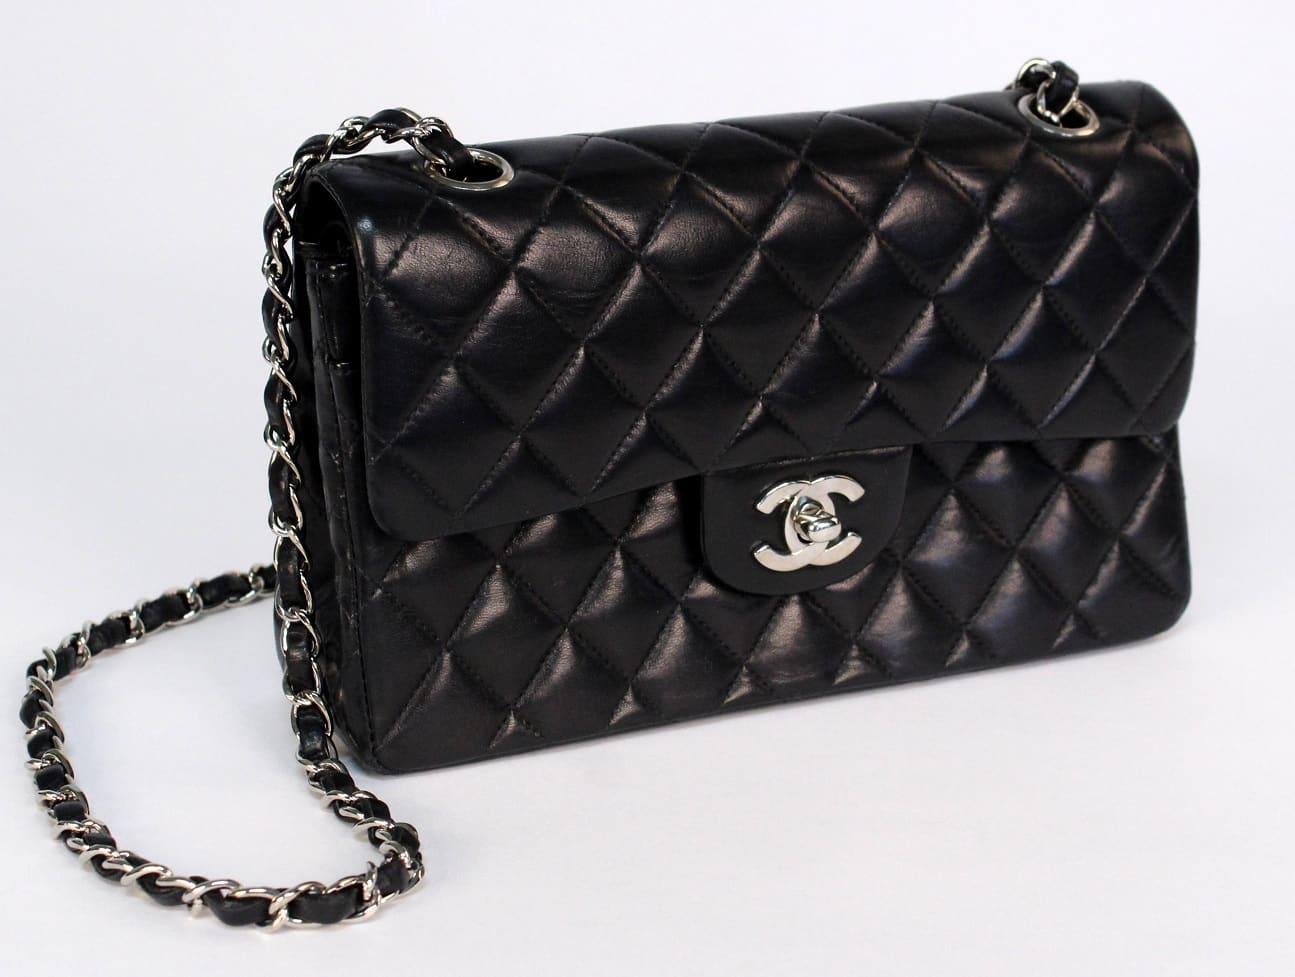 60a0b7d0f65f CHANEL Vintage Double Flap Shoulder Bag - Chelsea Vintage Couture